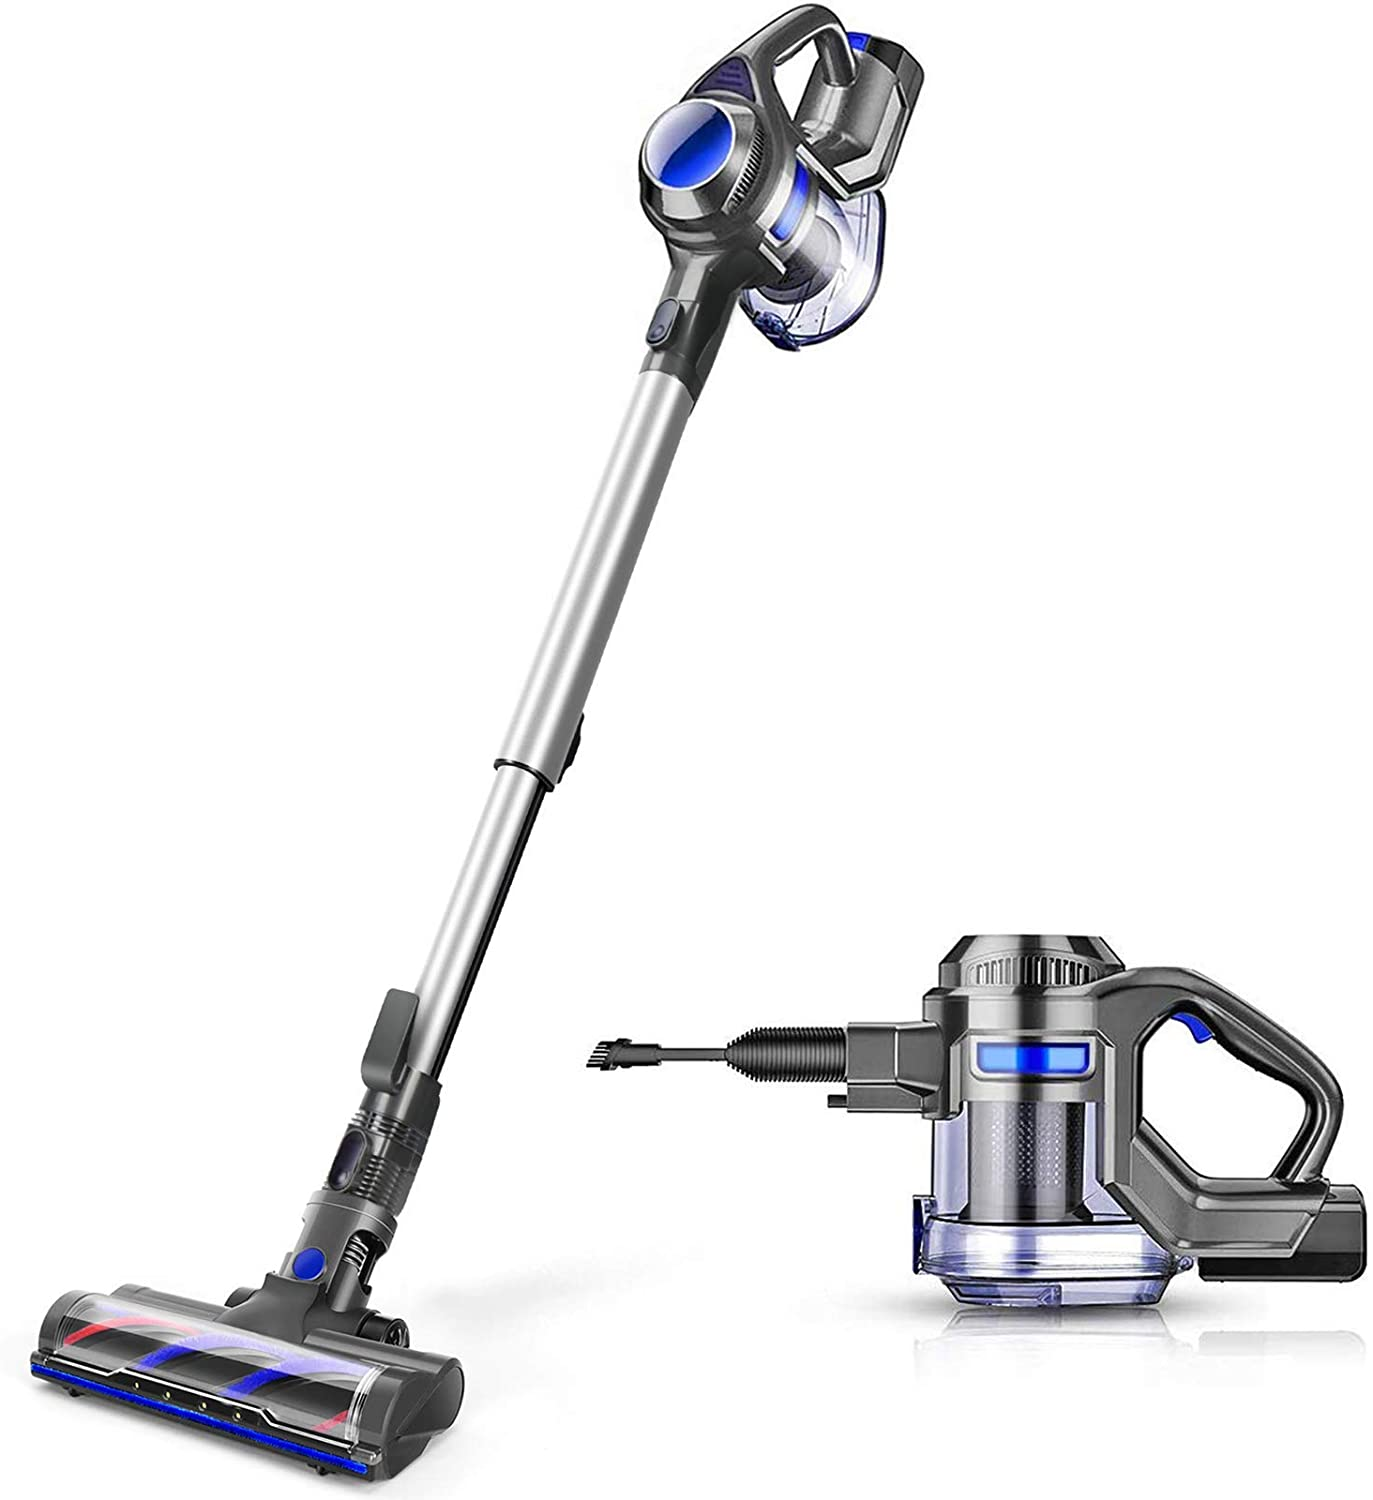 MOOSOO Cordless Vacuum, 4 in 1 Powerful Suction Stick Vacuum